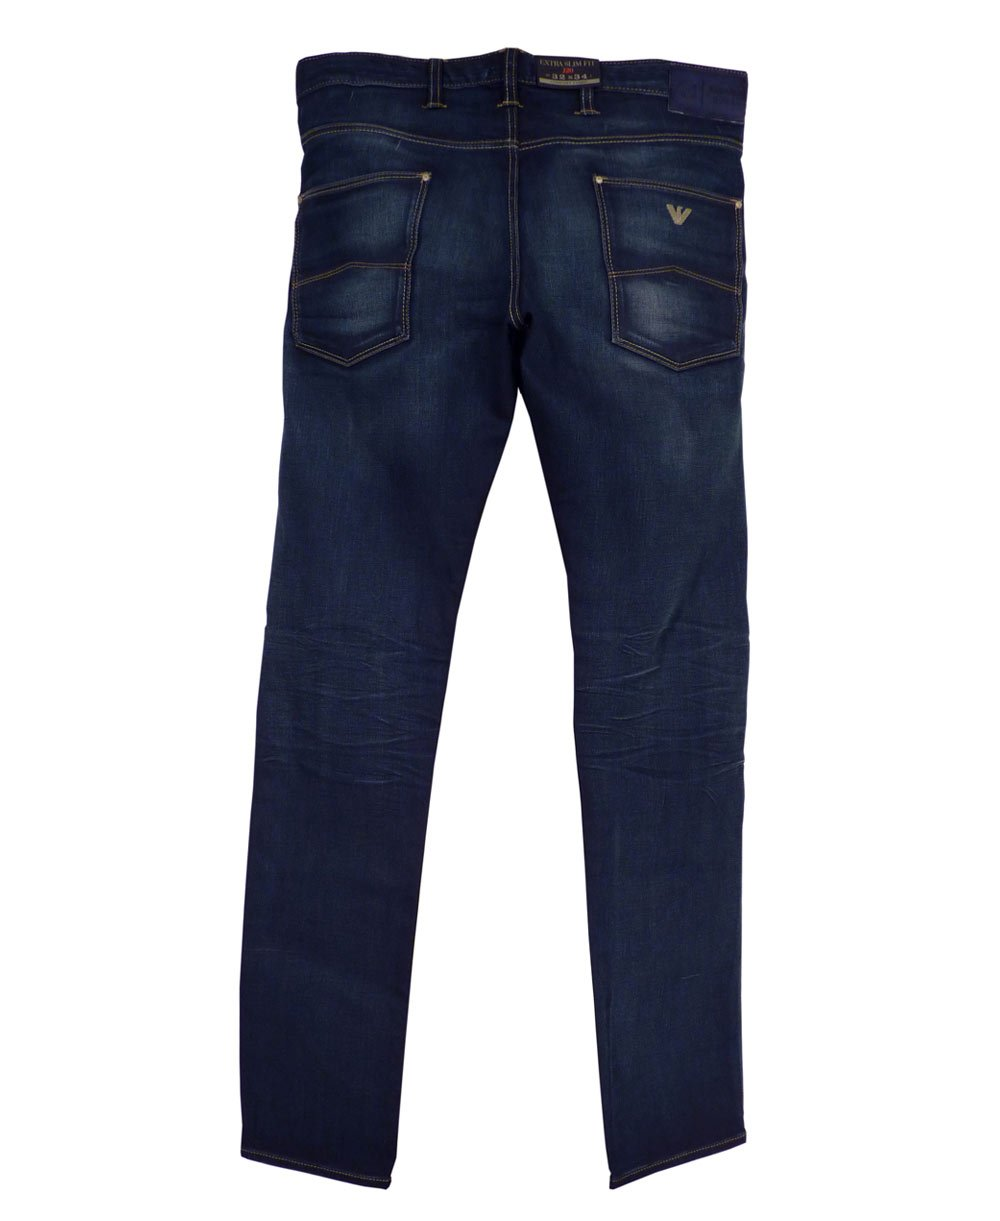 armani jeans j20 extra slim fit dark blue jeans armani jeans from jonathan trumbull uk. Black Bedroom Furniture Sets. Home Design Ideas